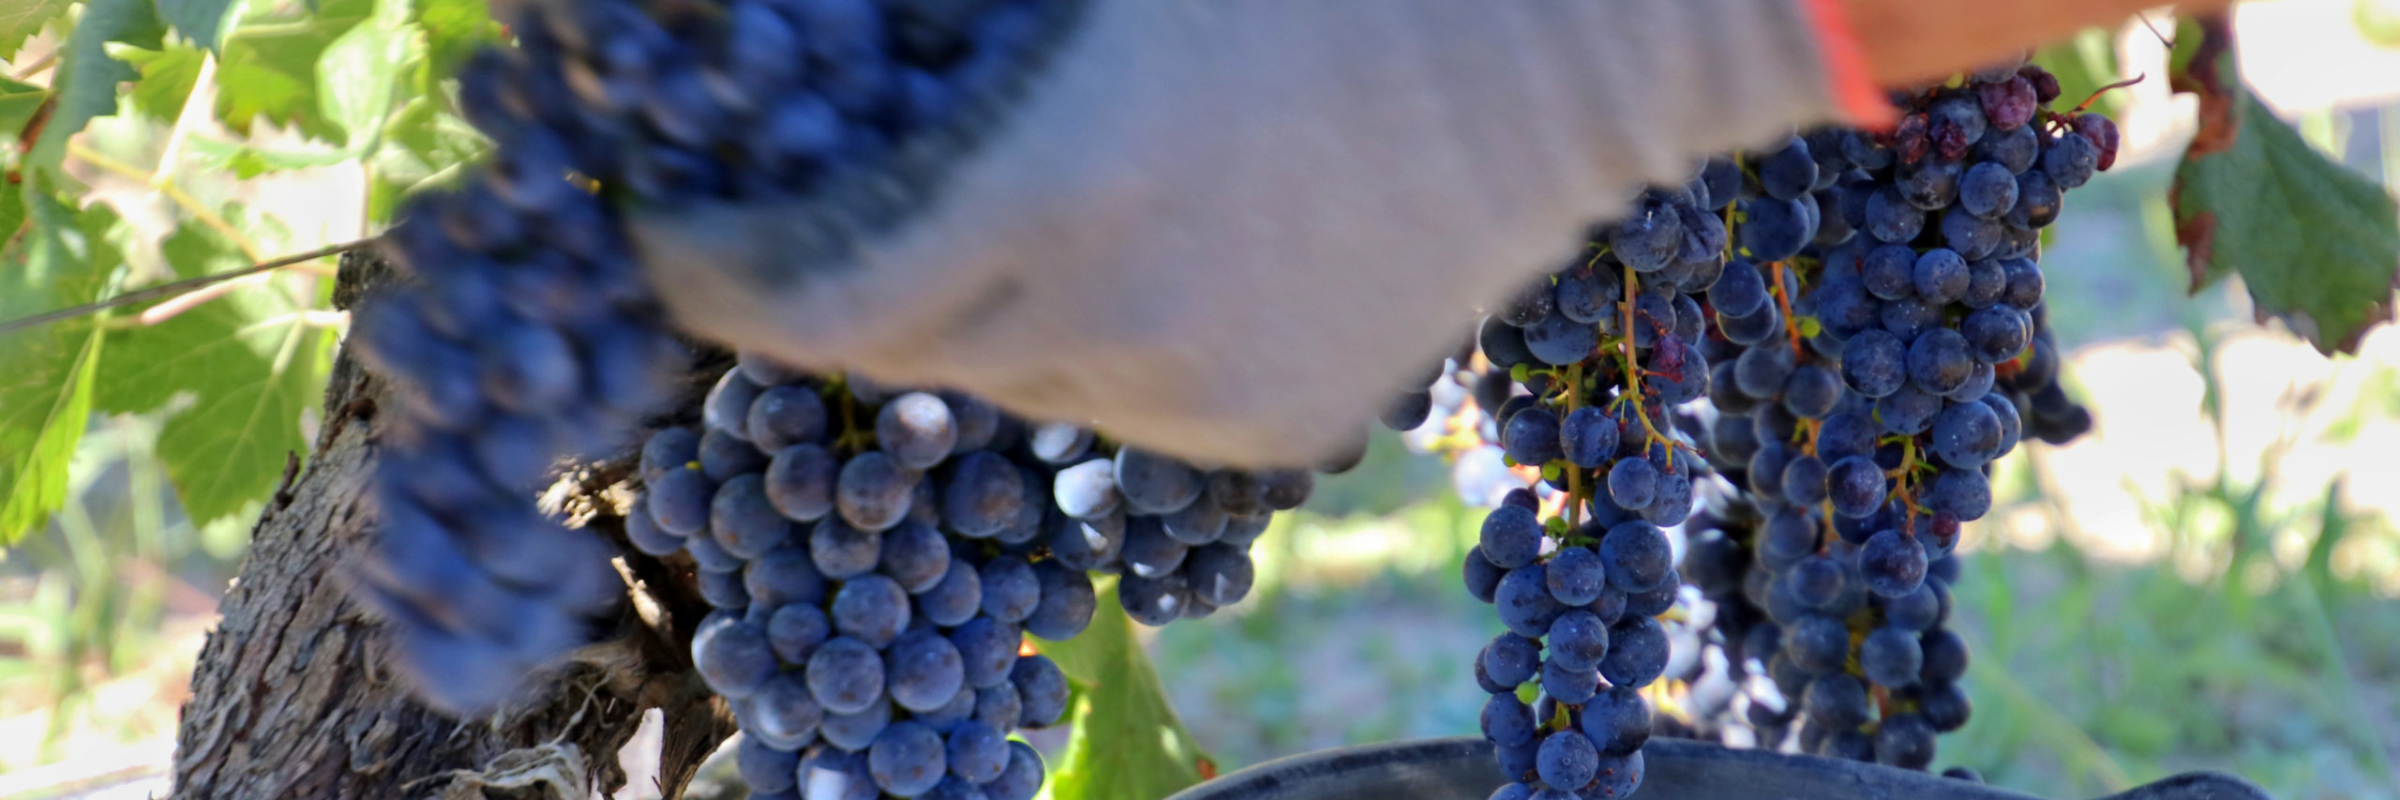 A close up of a grape picker's hands while picking bunches of Merlot grapes from the vines in Pomerol